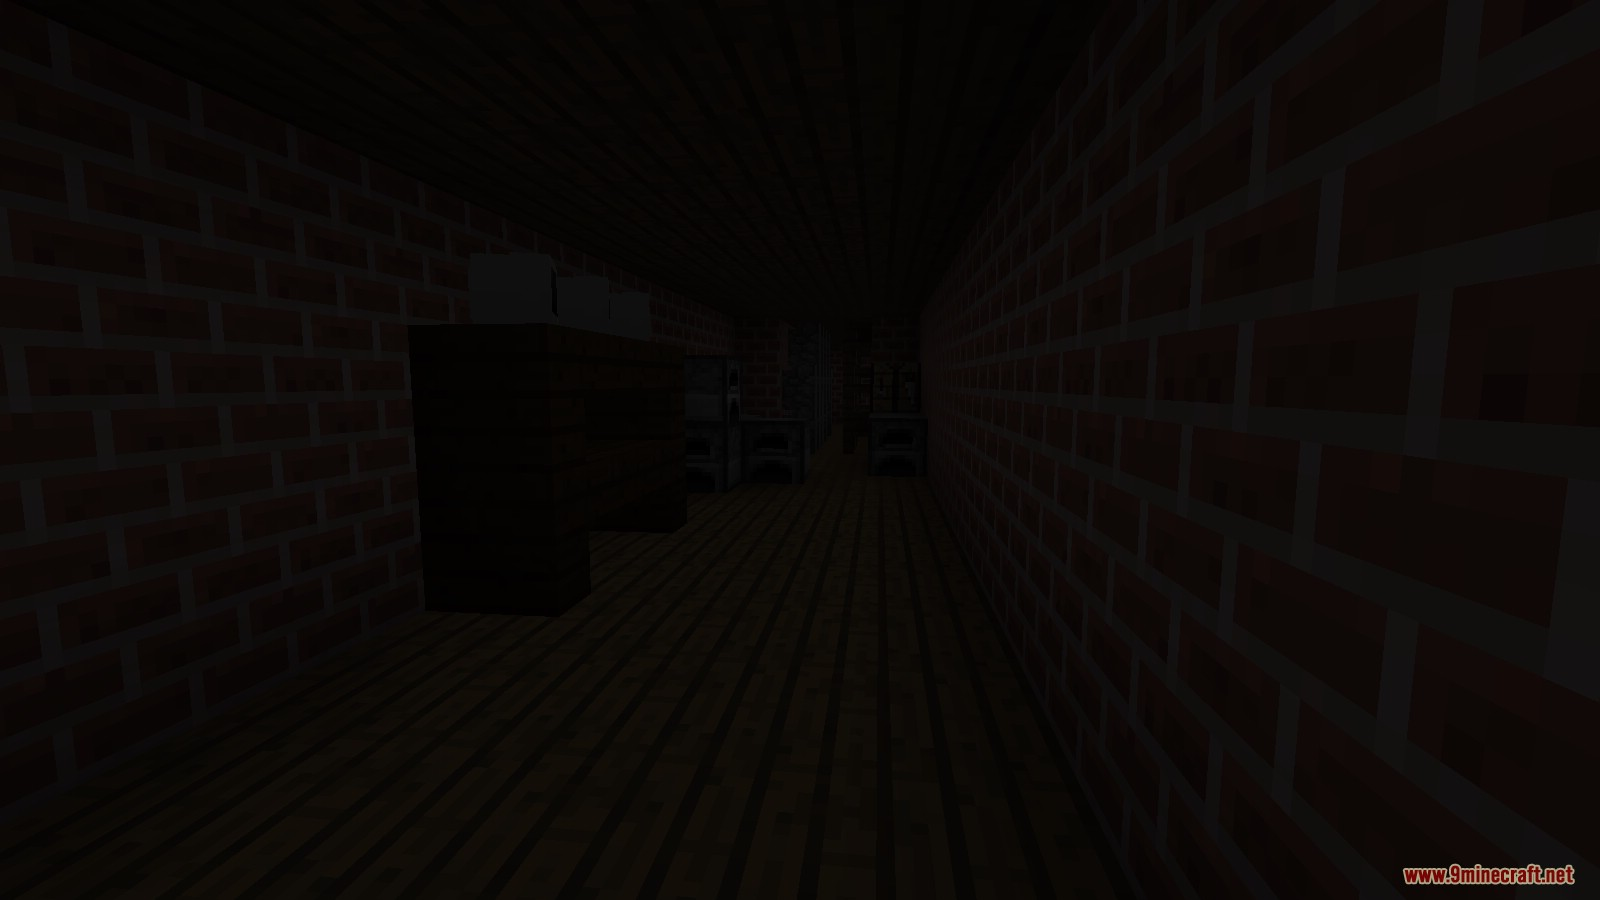 The Abyss Map Screenshots (6)